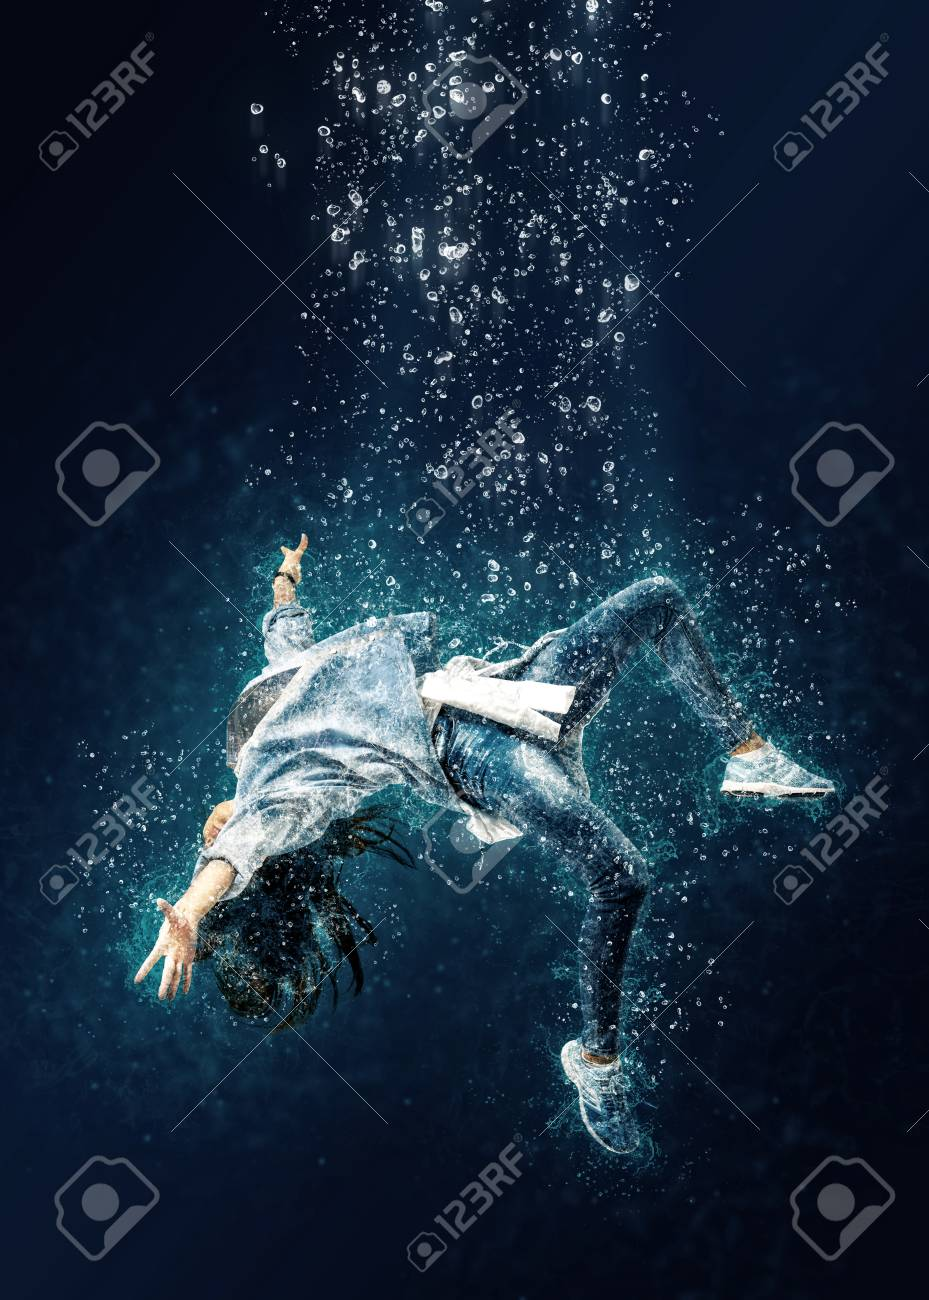 Woman is drowning under water  Horrible dream